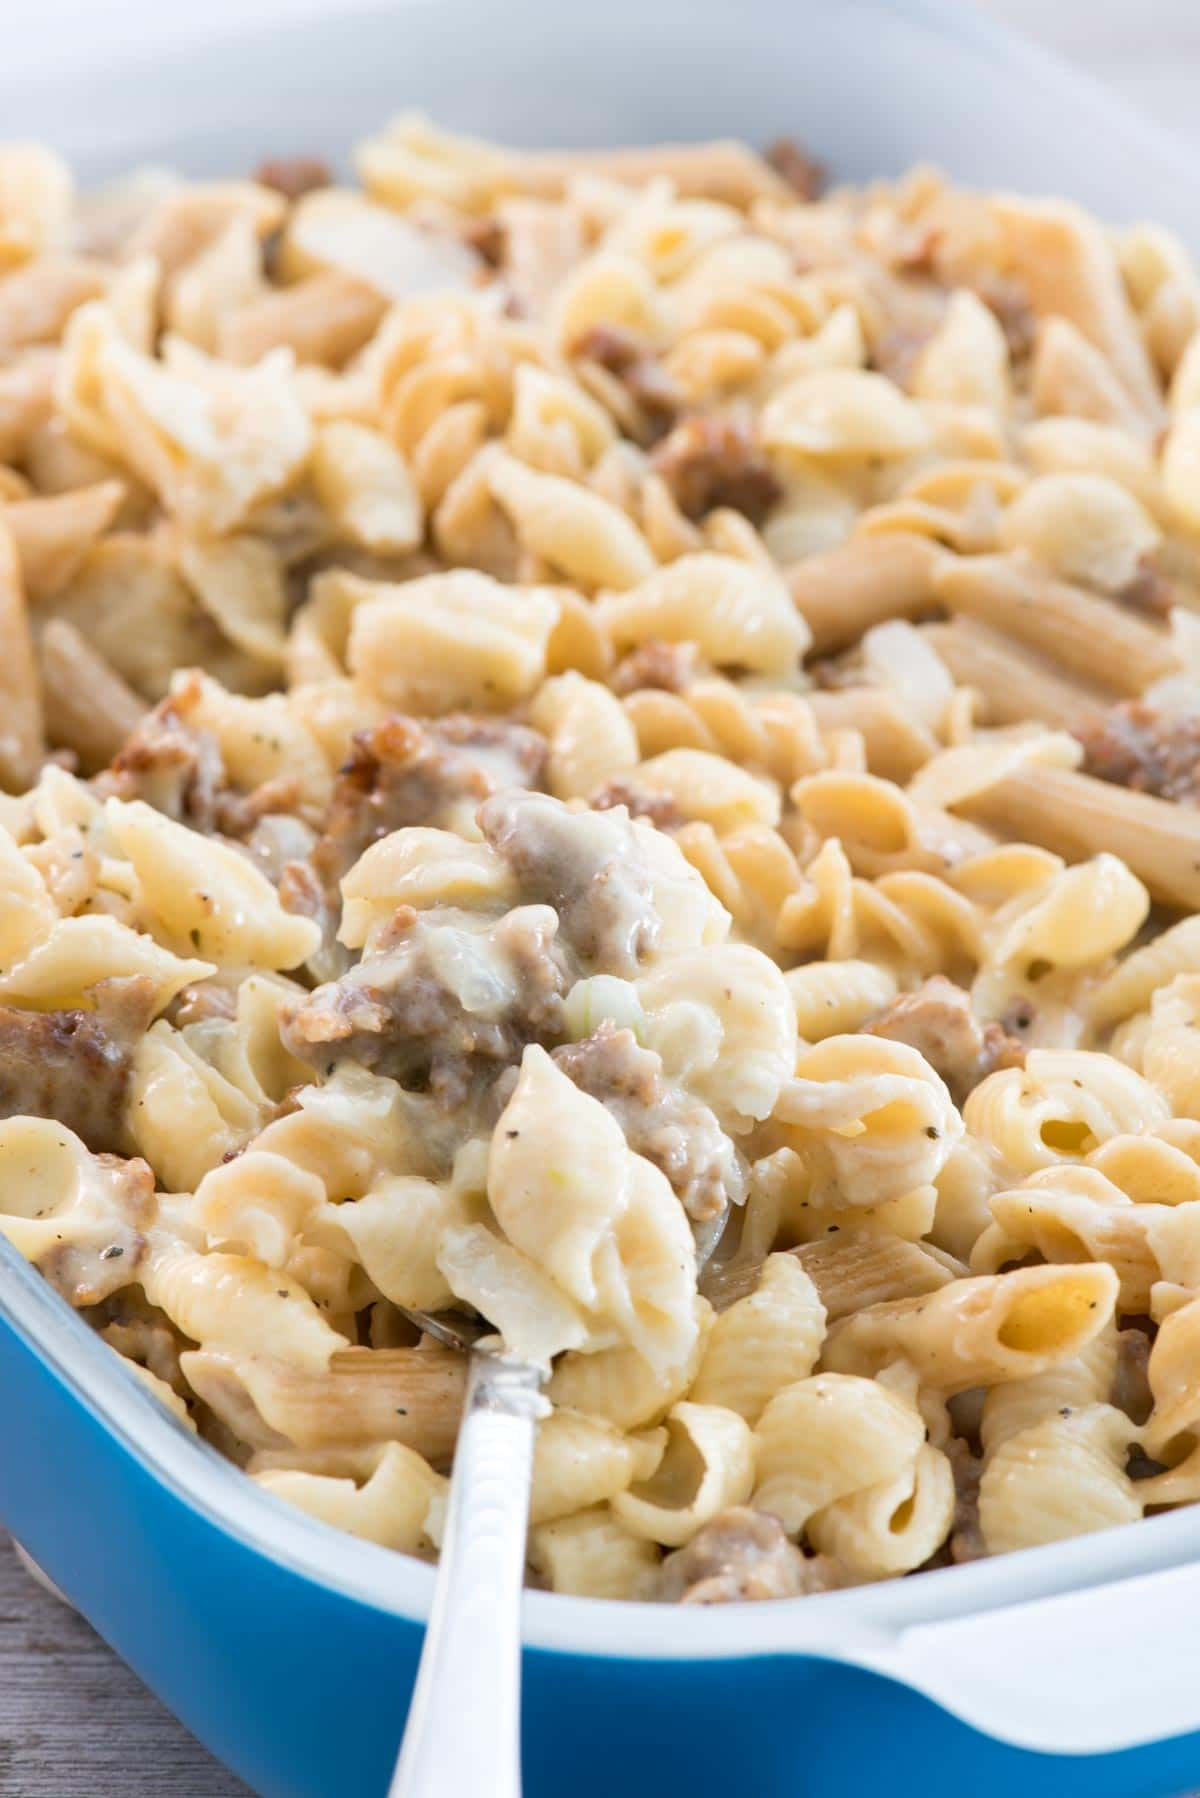 Sausage Mac & Cheese - this EASY macaroni and cheese recipe is full of Italian sausage! It's the perfect comfort food.